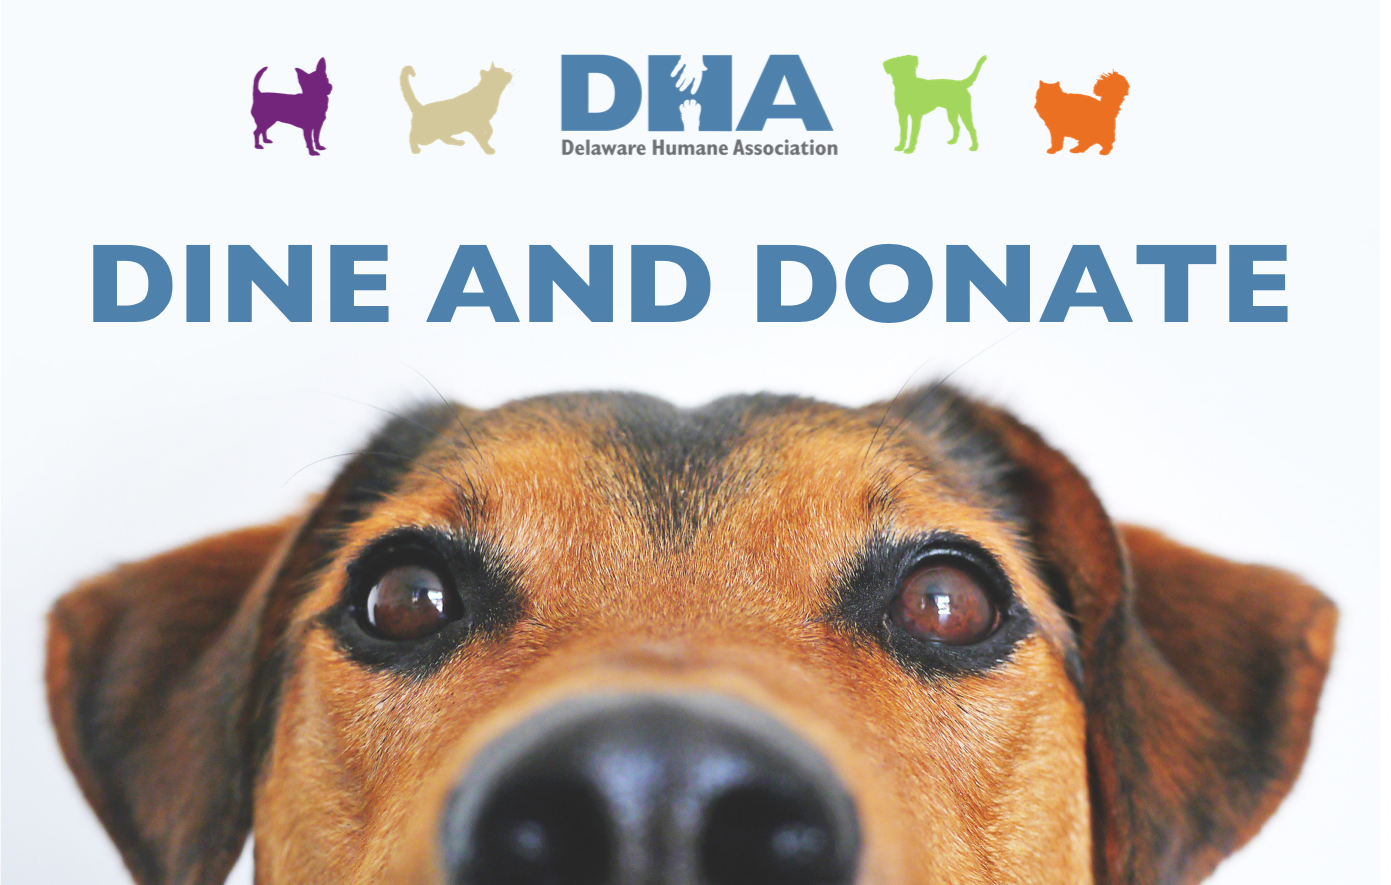 Available Dogs - Delaware Humane Association